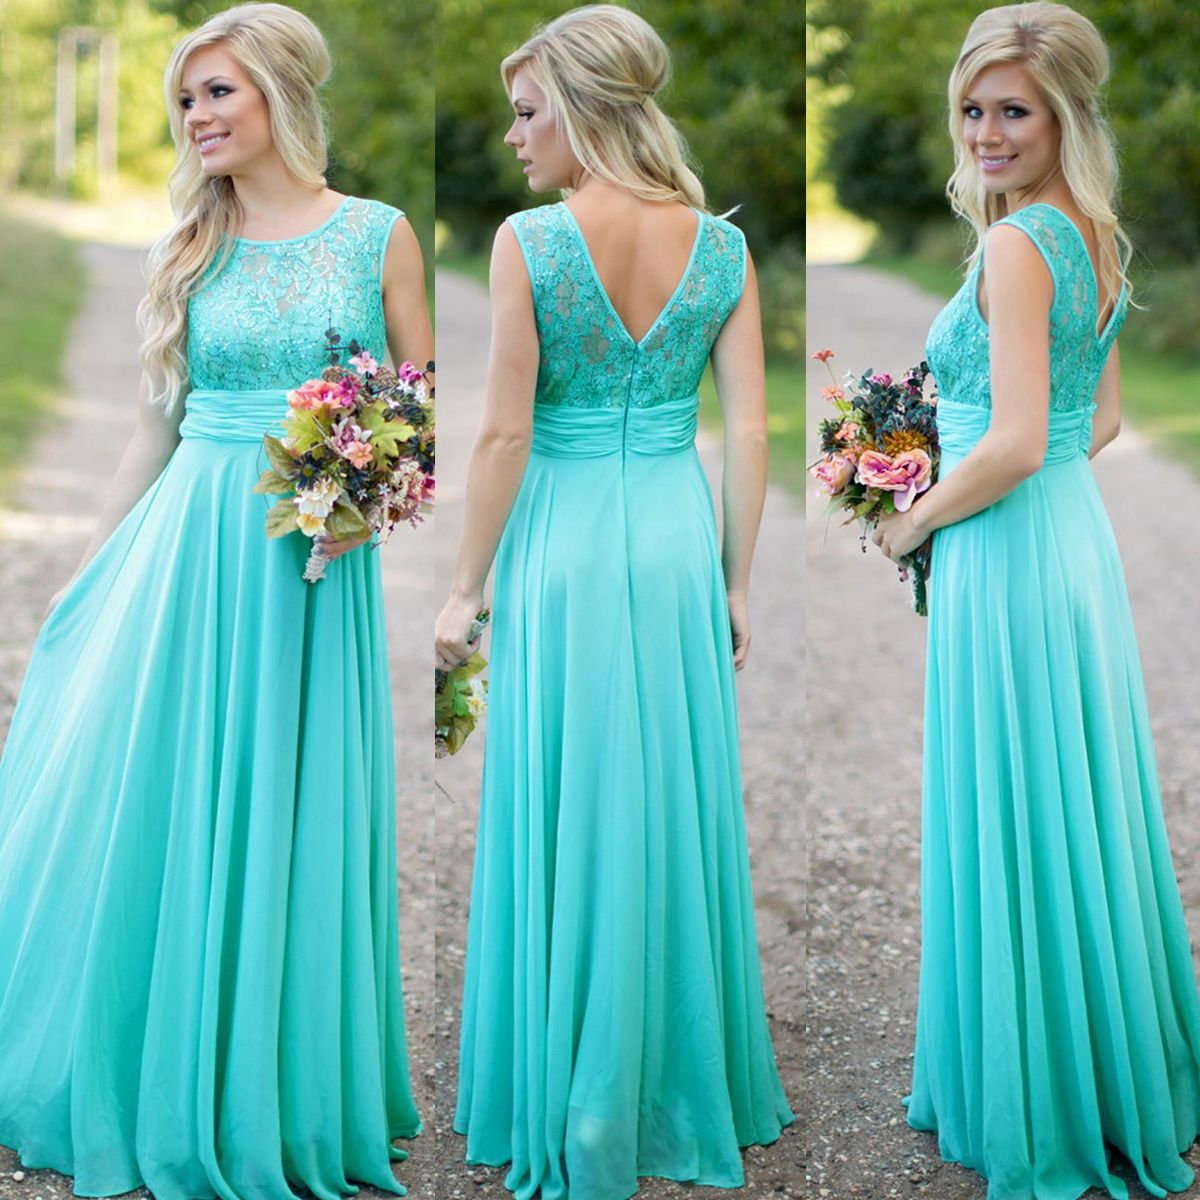 Not The Color But Style Http Www Luulla Product 618432 Turquoise Blue Bridesmaid Dress Lace Long Wedding Party